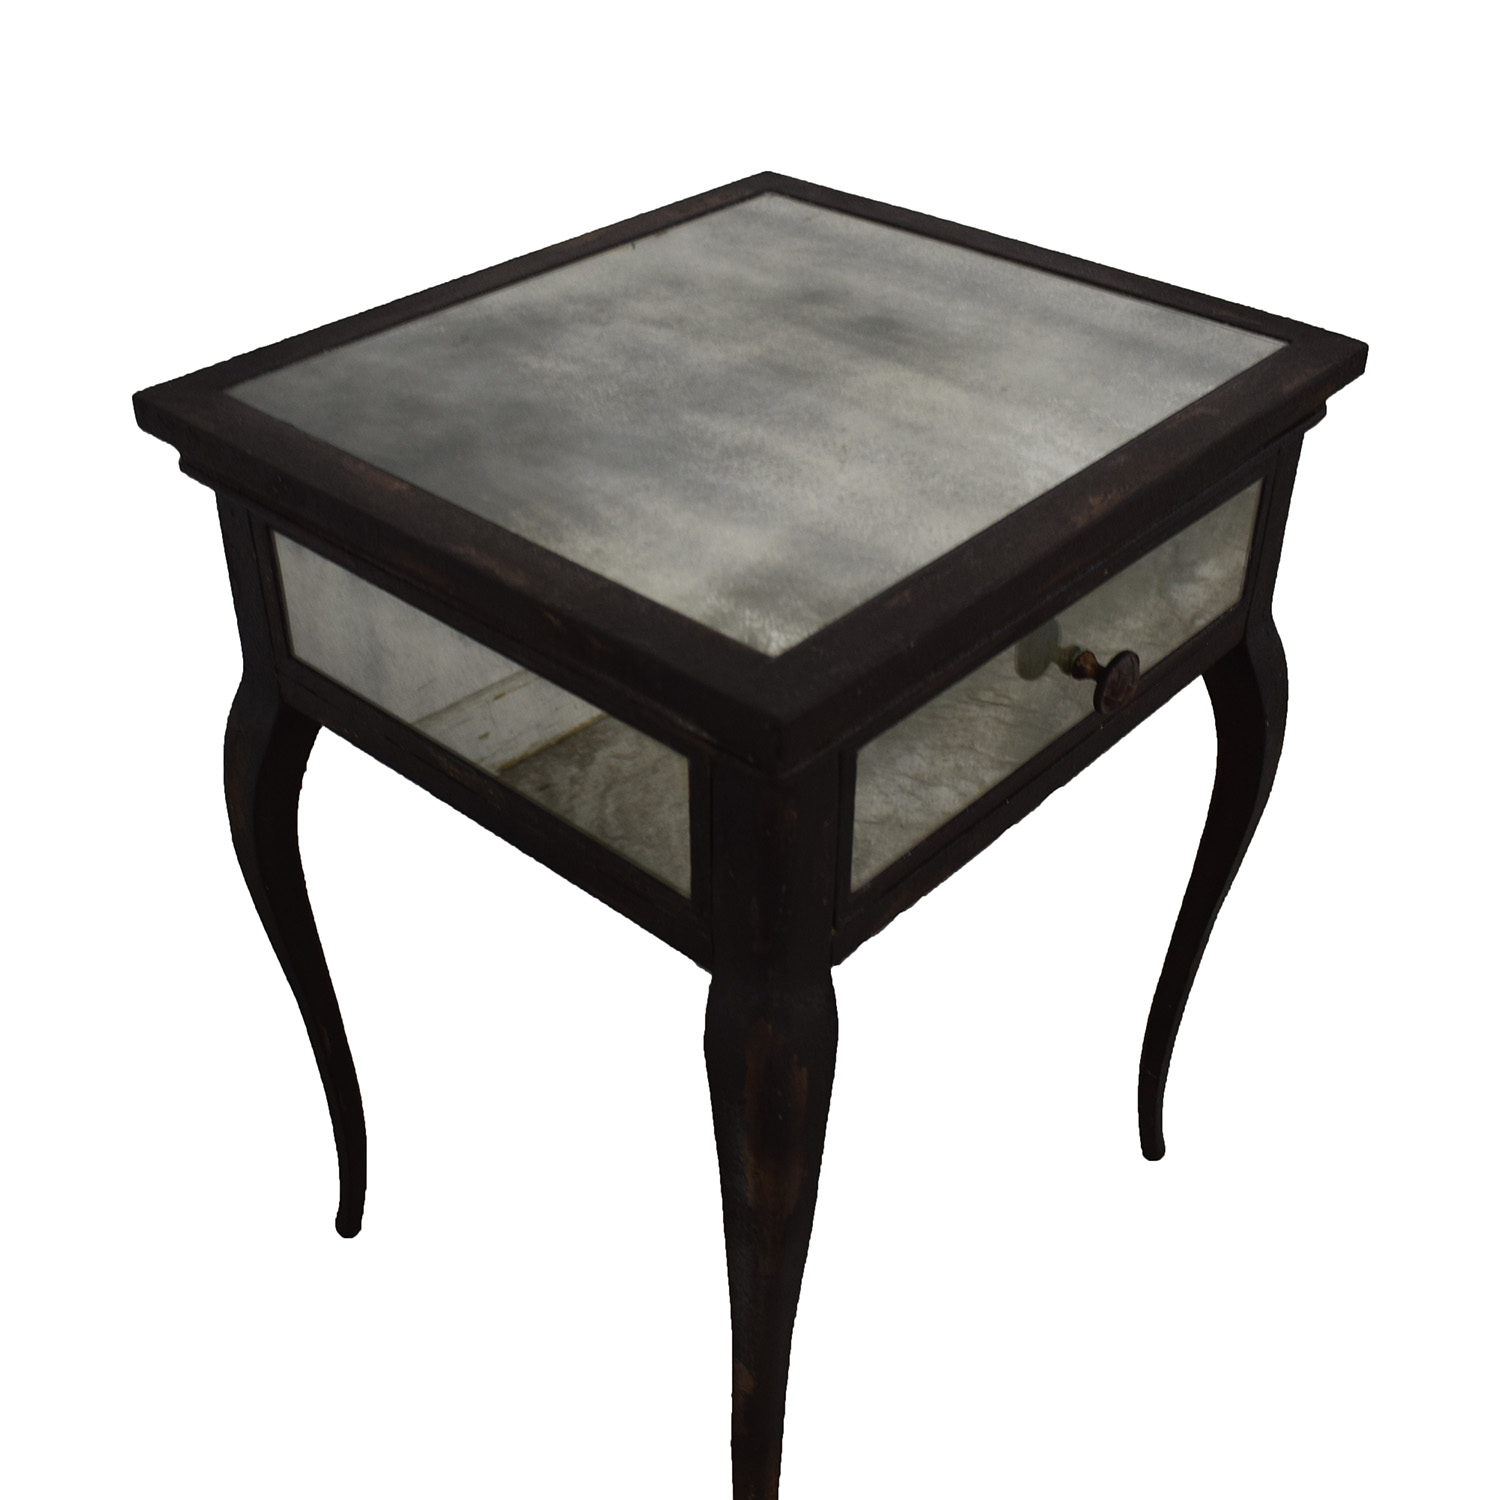 Uttermost Smoked Mirror and Metal End Table with One Drawer / End Tables